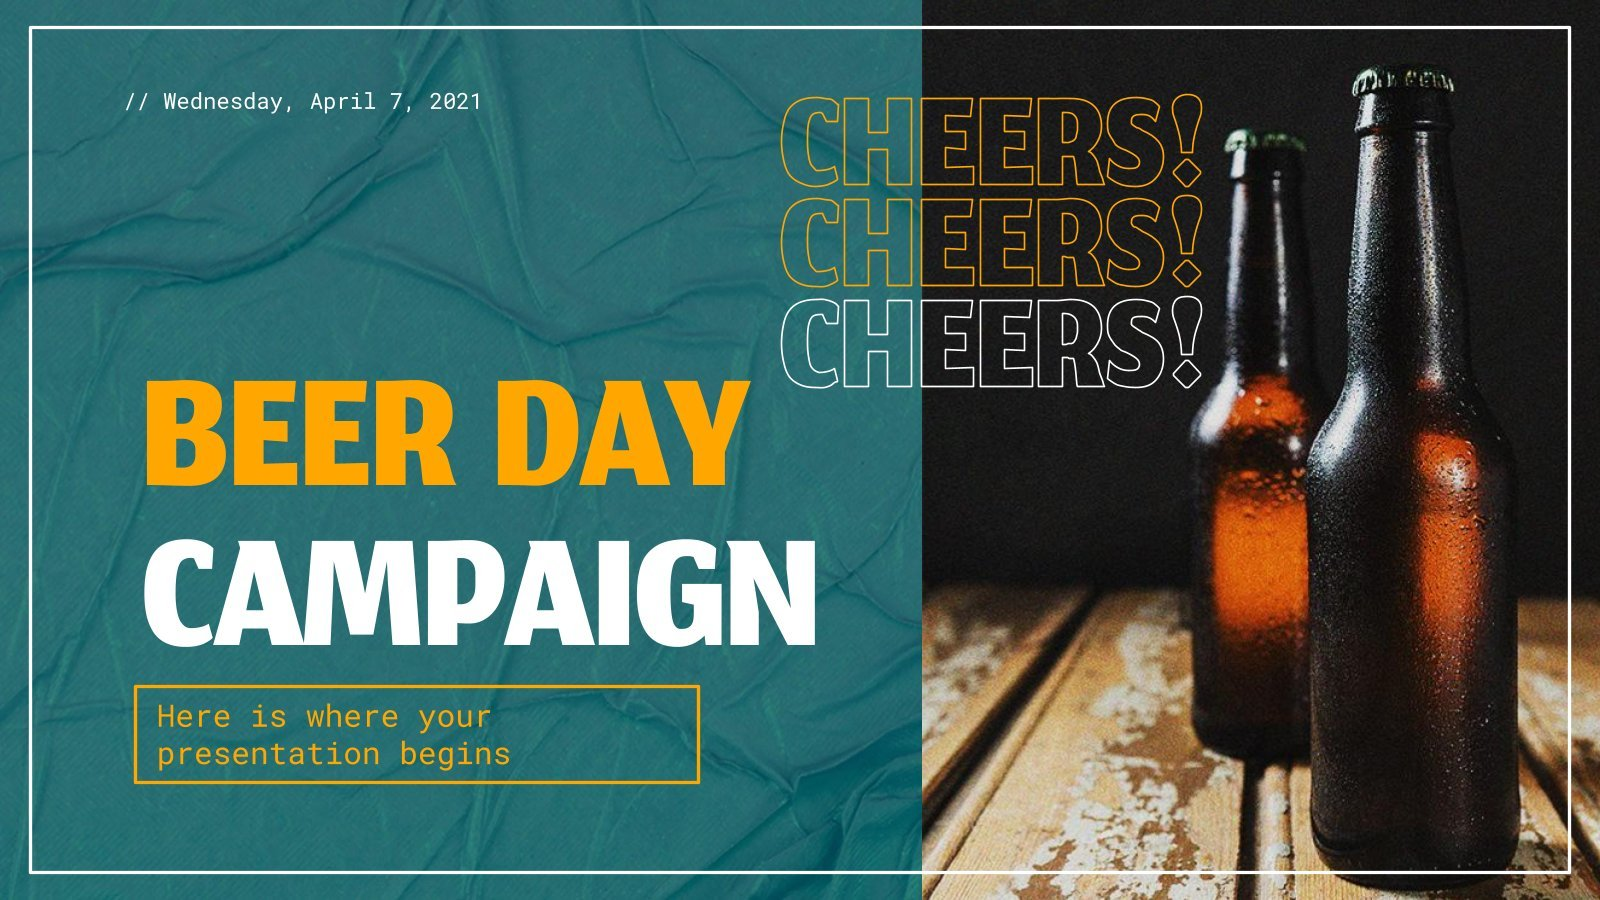 Beer Day Campaign presentation template